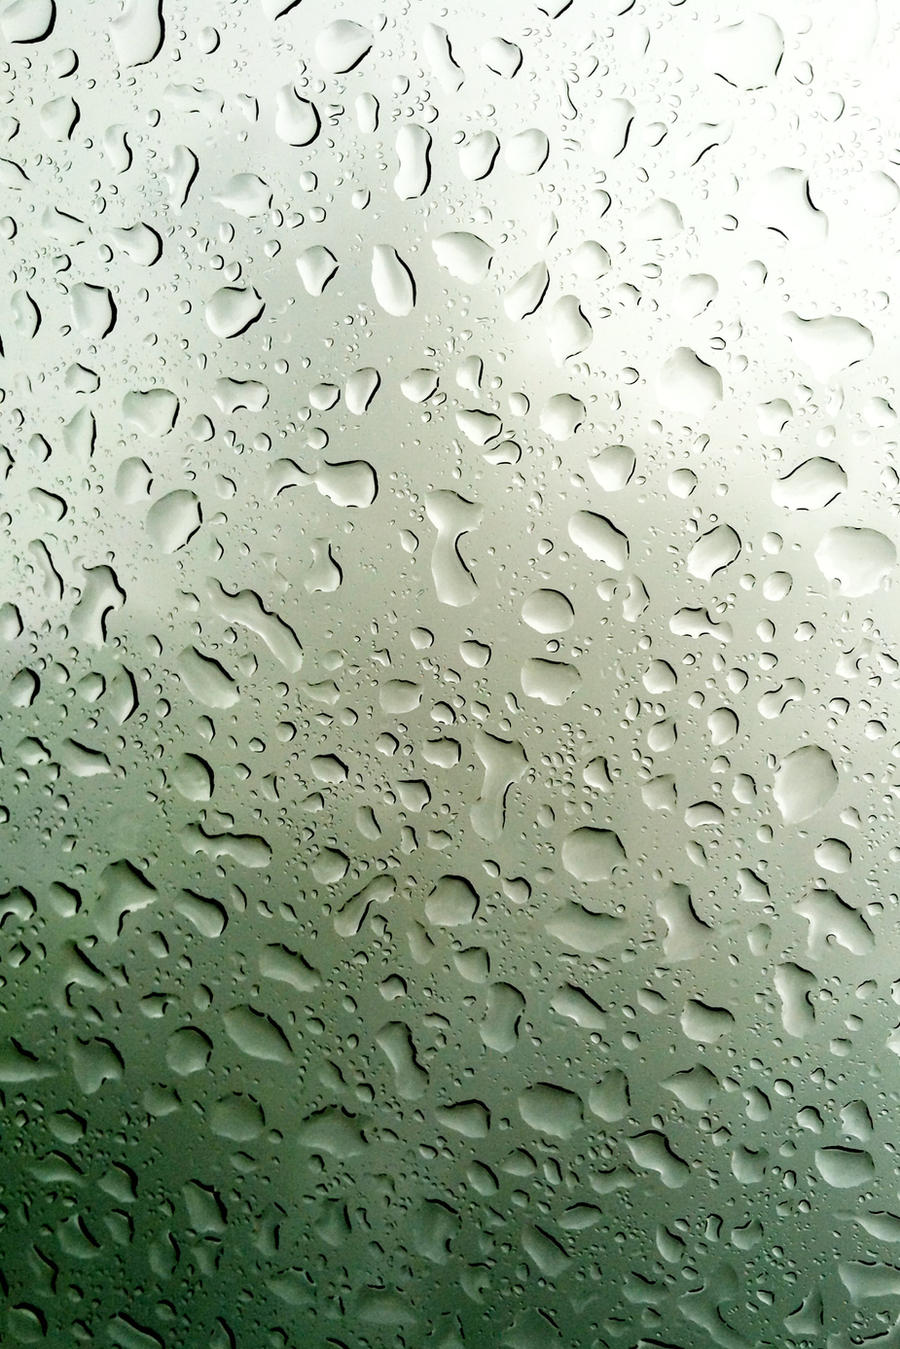 iPhone Wallpaper - Raindrops by clokverkorange